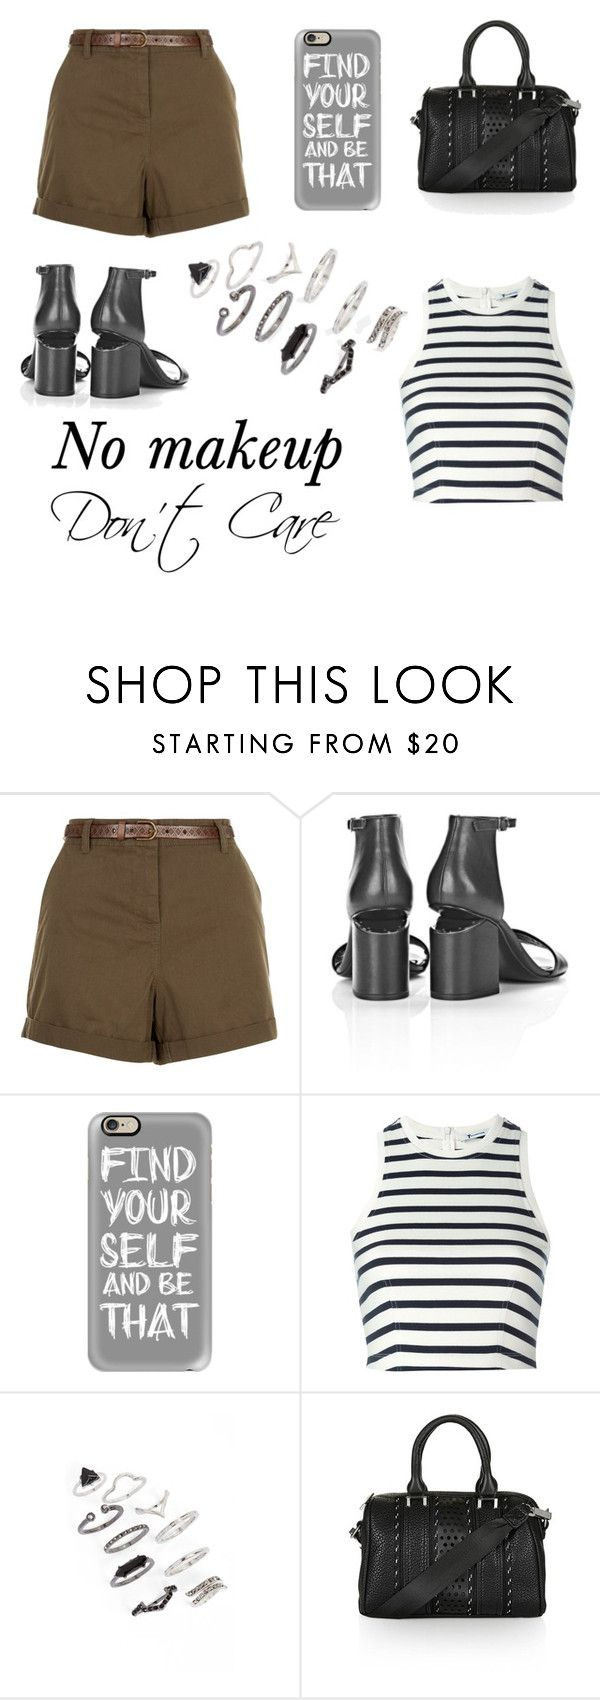 """Finding Myself"" by nineties-wallflower ❤ liked on Polyvore featuring New Look, Alexander Wang, Casetify, T By Alexander Wang, Topshop, StreetStyle, adventure, girlpower, stripedshirt and HappyCamper"